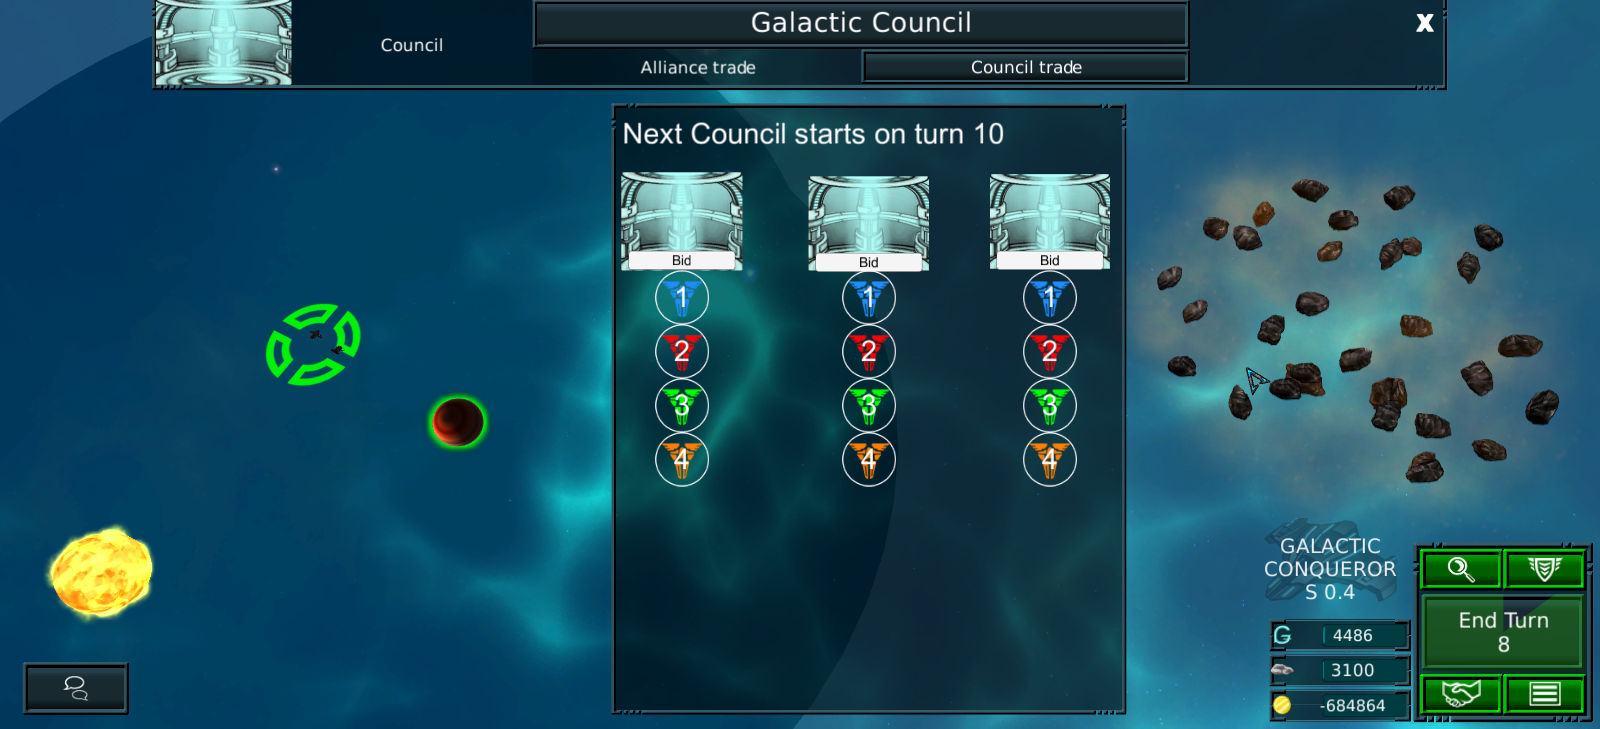 Council WIndow at the moment